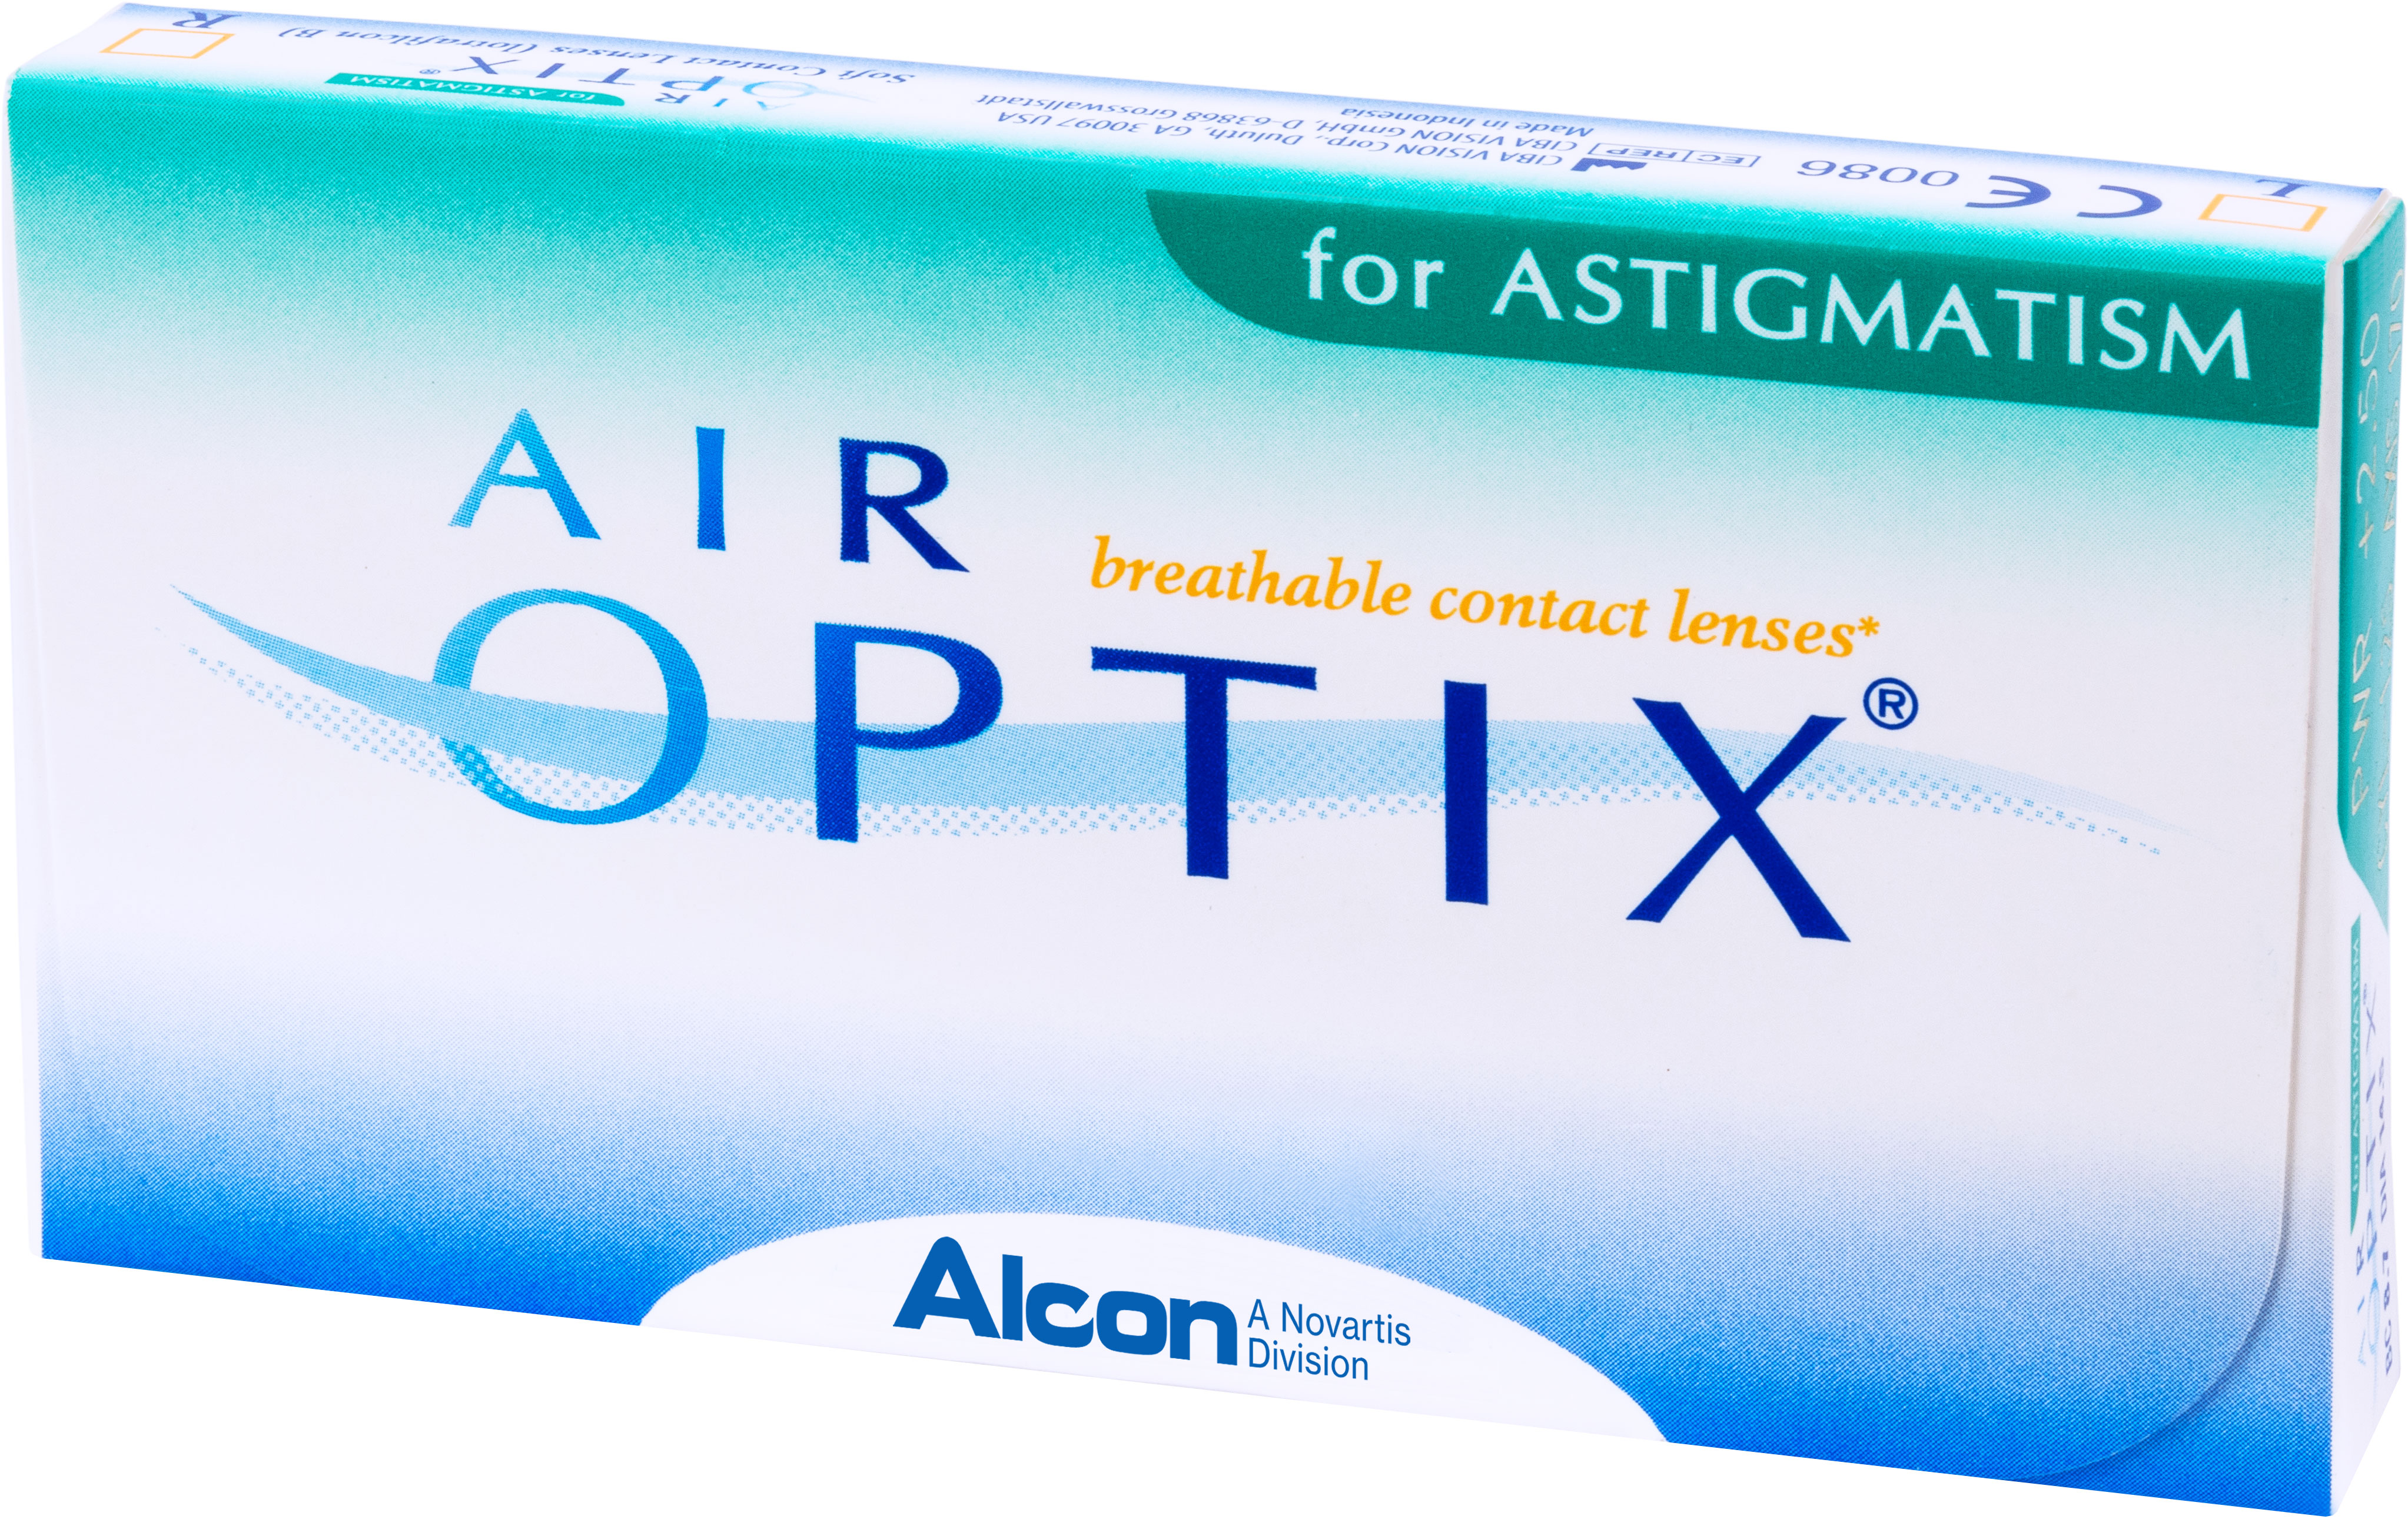 Аlcon контактные линзы Air Optix for Astigmatism 3pk /BC 8.7/DIA14.5/PWR -1.00/CYL -0.75/AXIS 180100011357